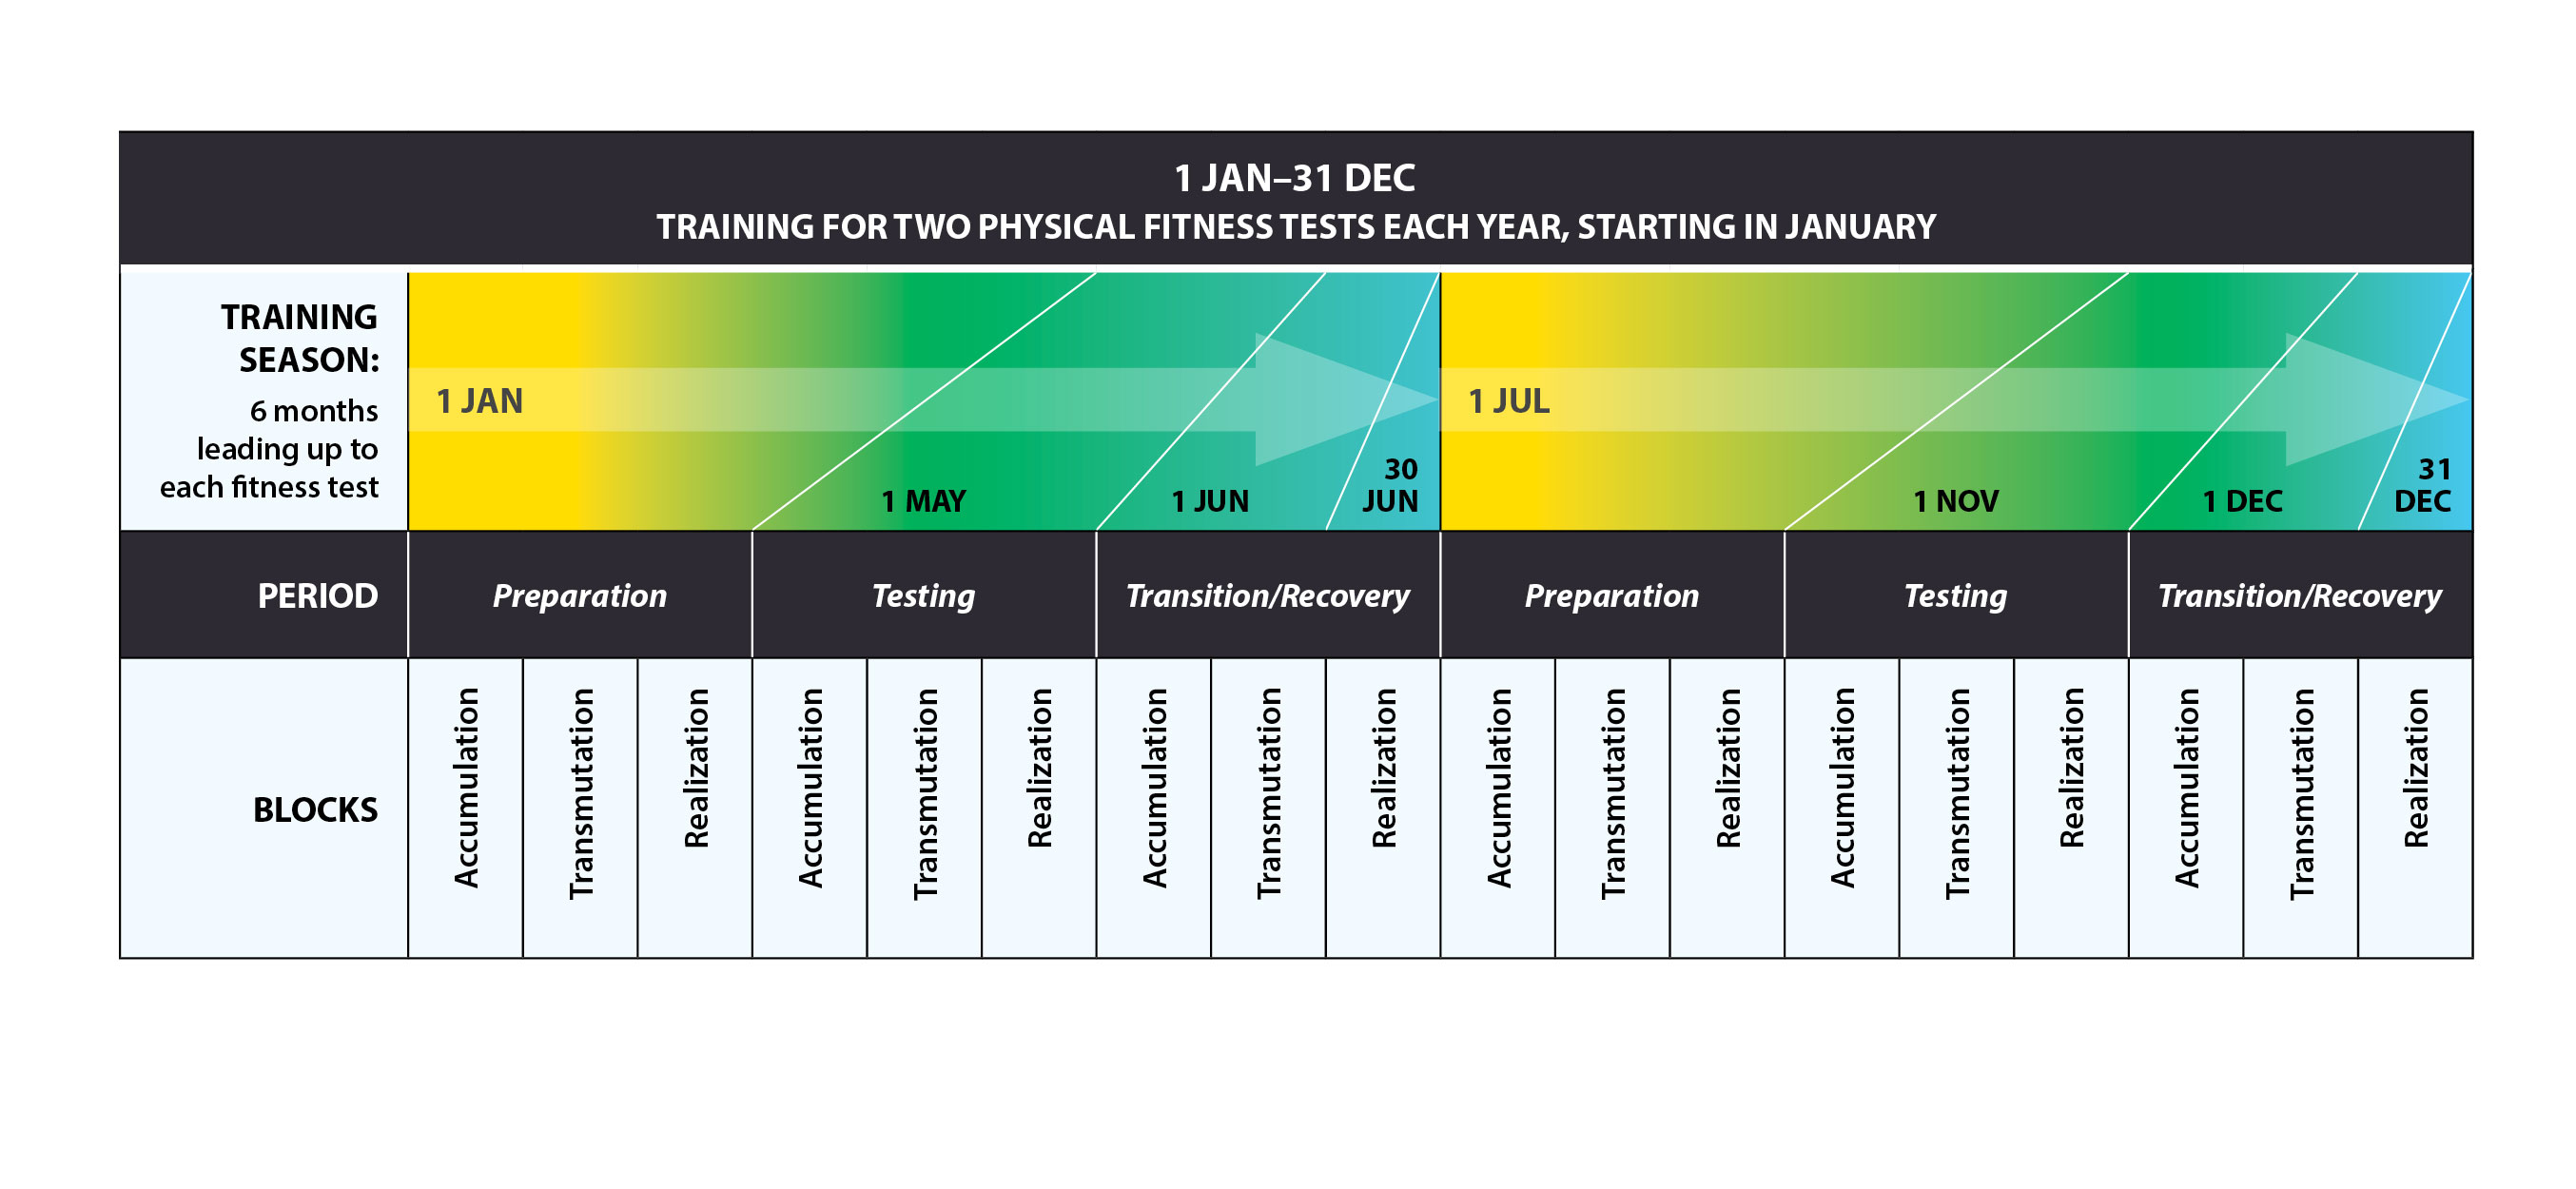 The periodization table identifies the preparation, testing, and transition/recovery periods for the 6-month training season leading up to each physical fitness test. Training is for two physical fitness tests each year, starting in January.